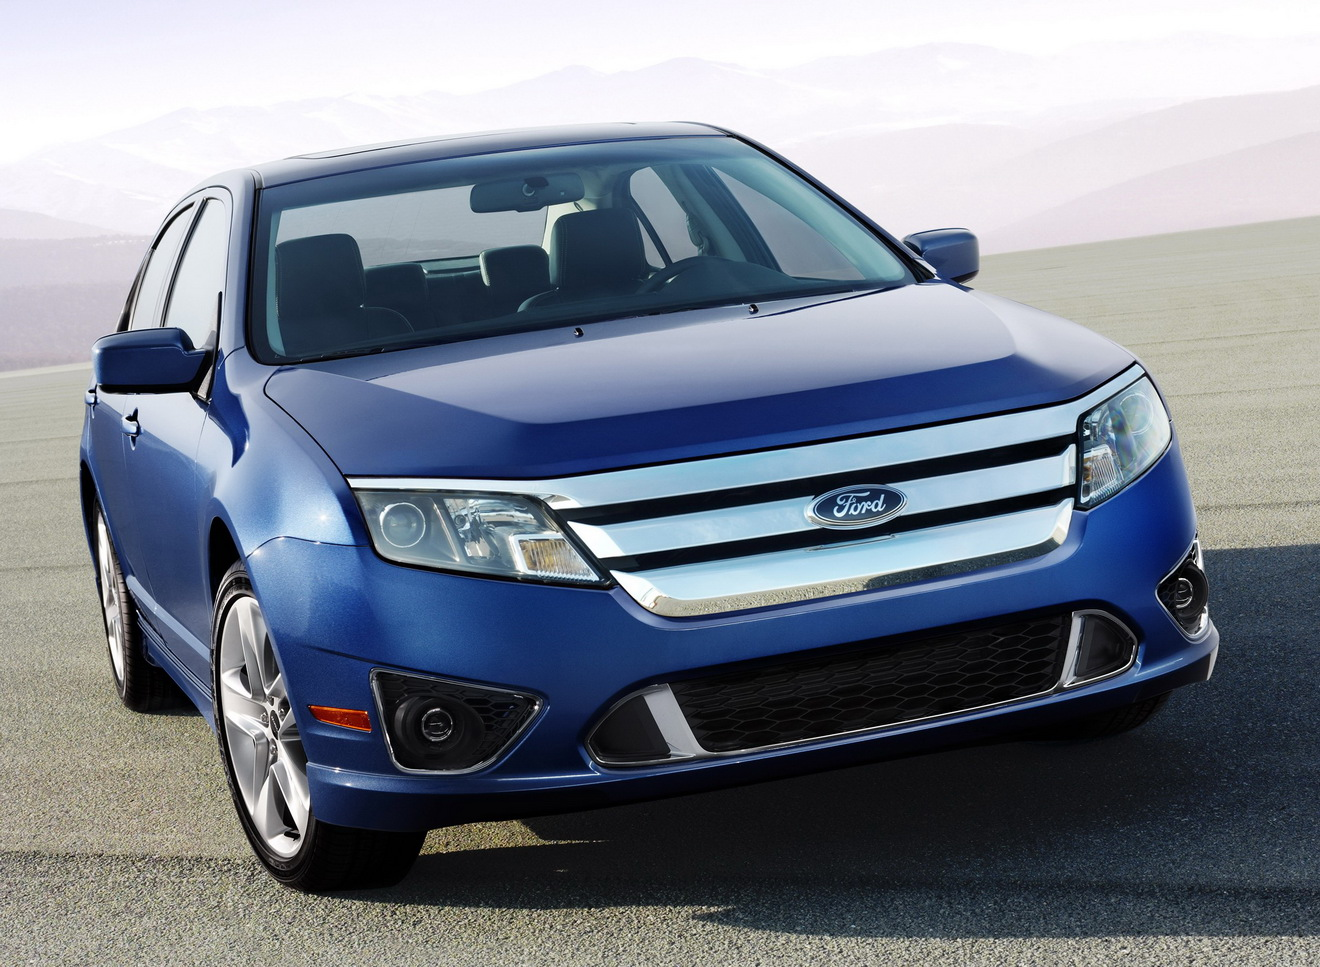 Ford Fusion 2010 #1